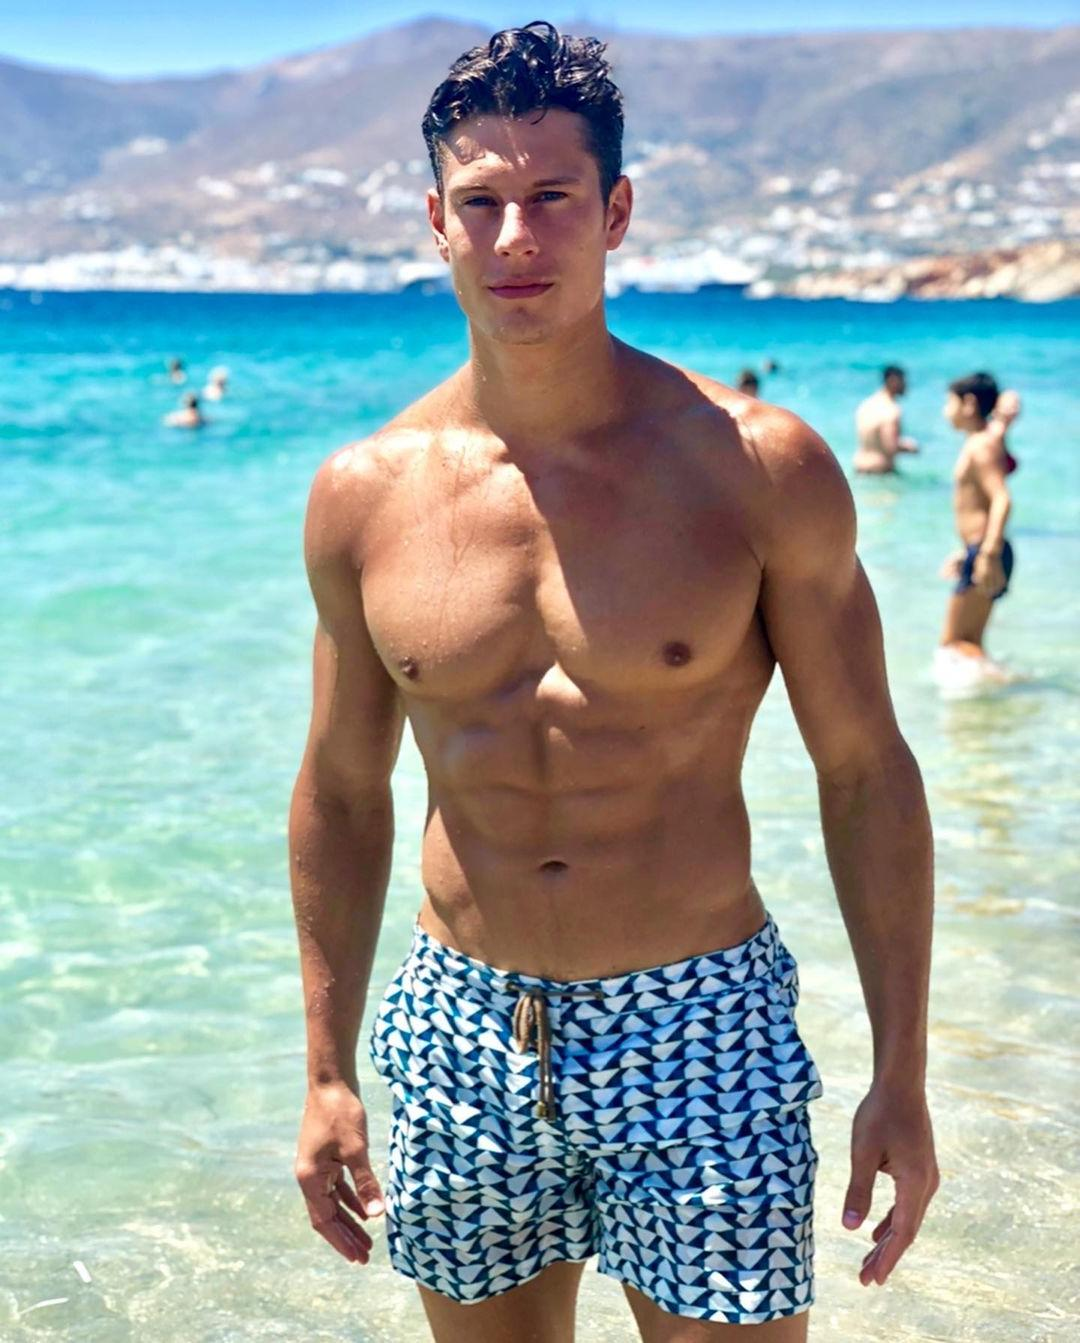 shirtless-fit-male-model-massive-muscular-pecs-abs-blue-ocean-summer-fun-young-hunk